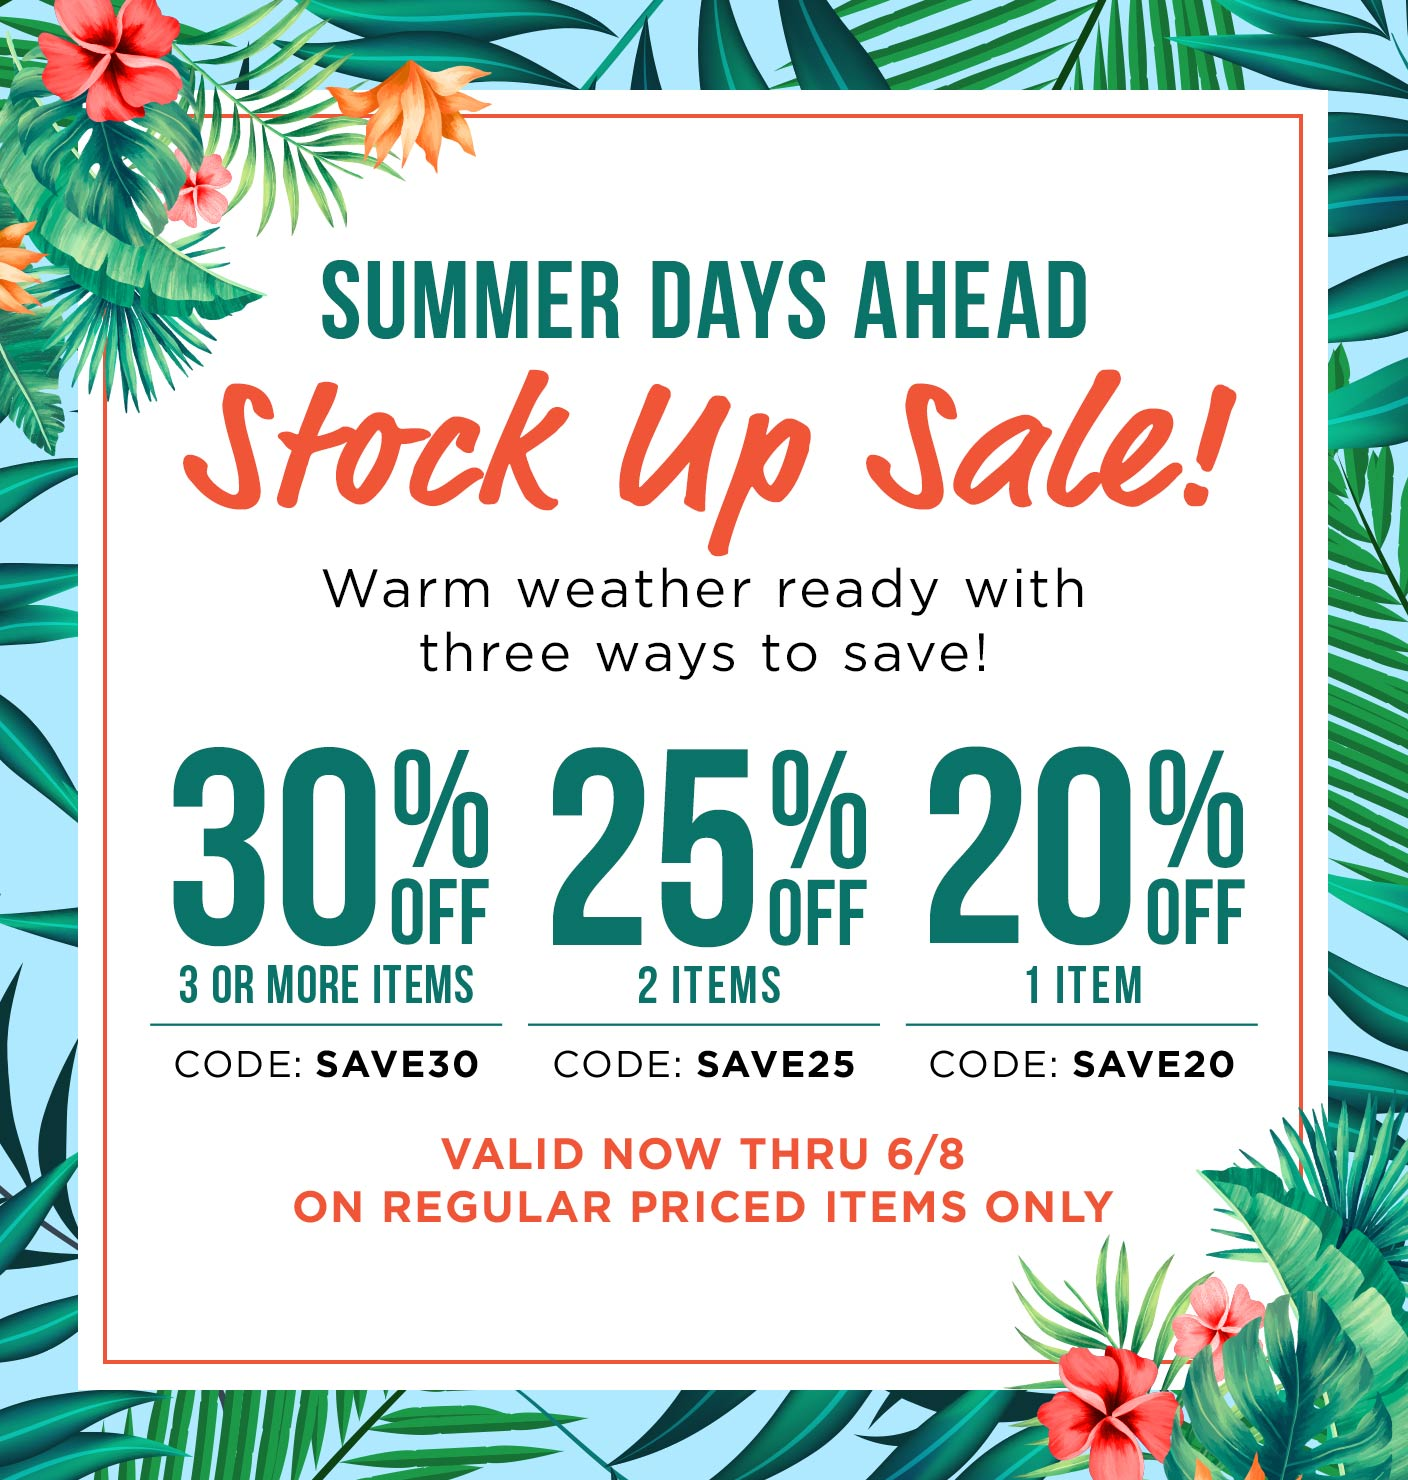 Summer Days Ahead - Stock Up Sale! 30% off 3 or more items; Code - SAVE30; 25% OFF 2 Items - Code: SAVE25; 20% OFF 1 ITEM - code: SAVE20 Valid now thru 6/8 on regular priced items only - shop now